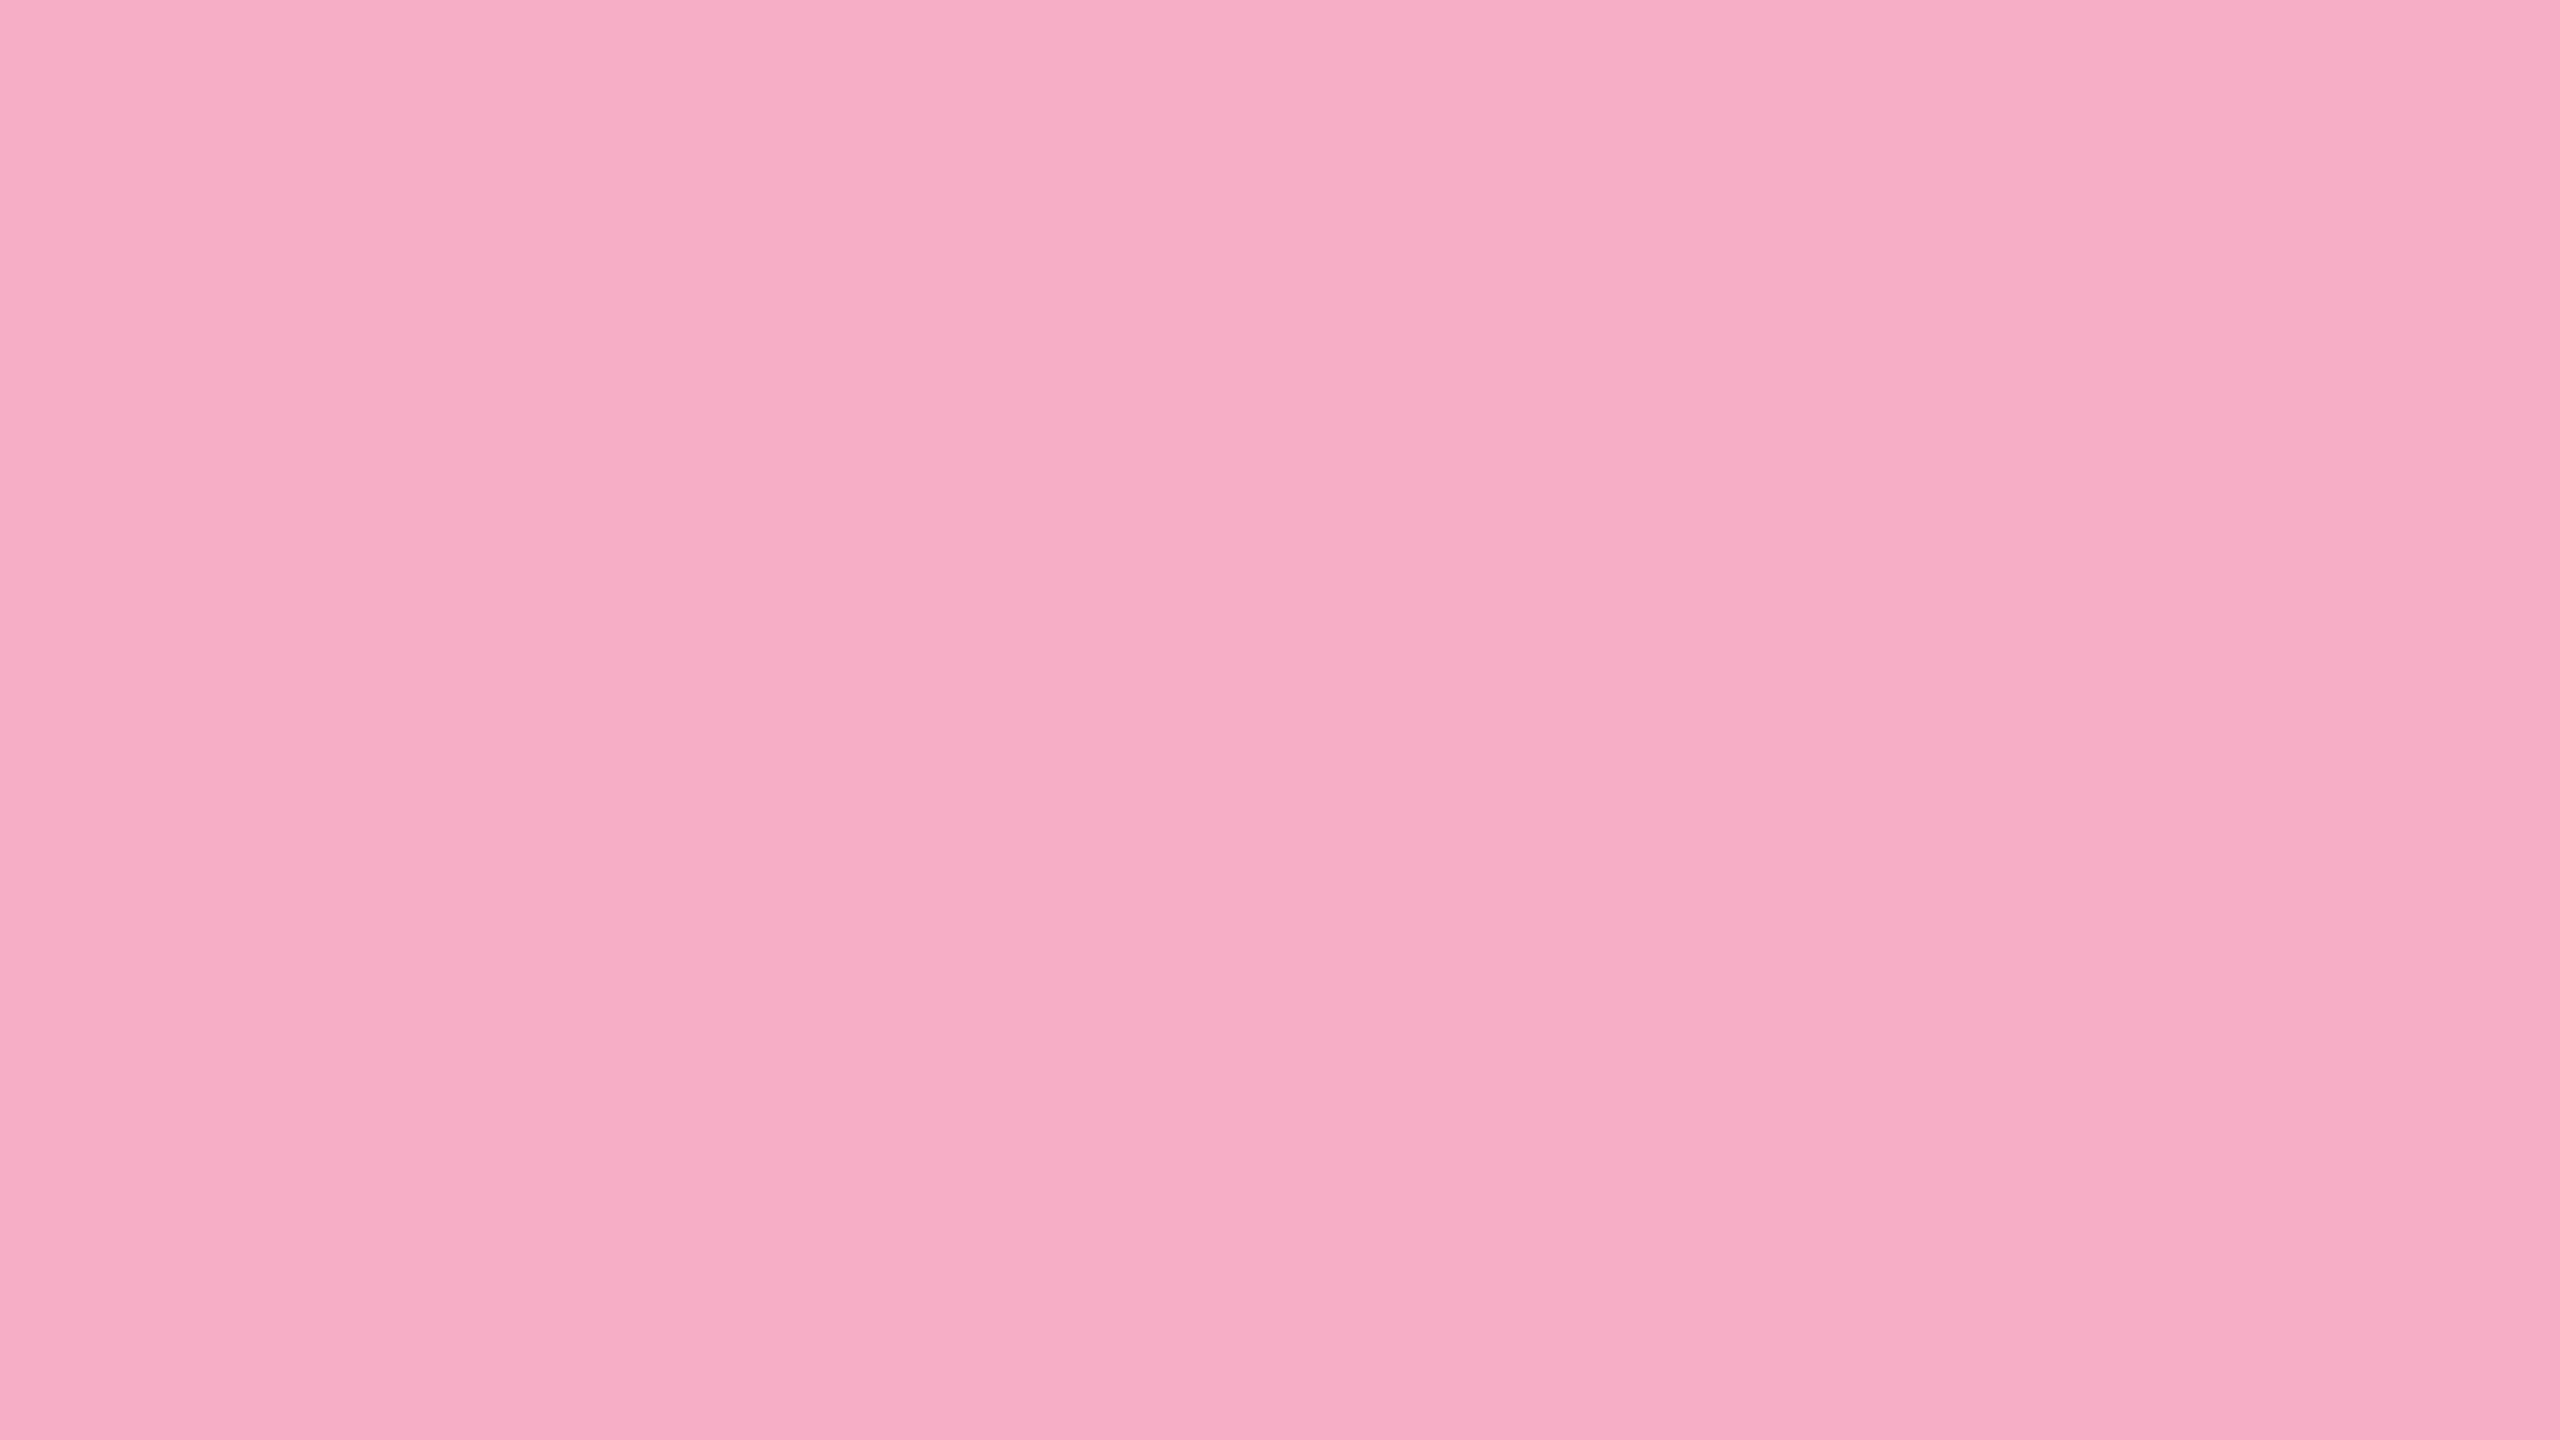 2560x1440 Nadeshiko Pink Solid Color Background